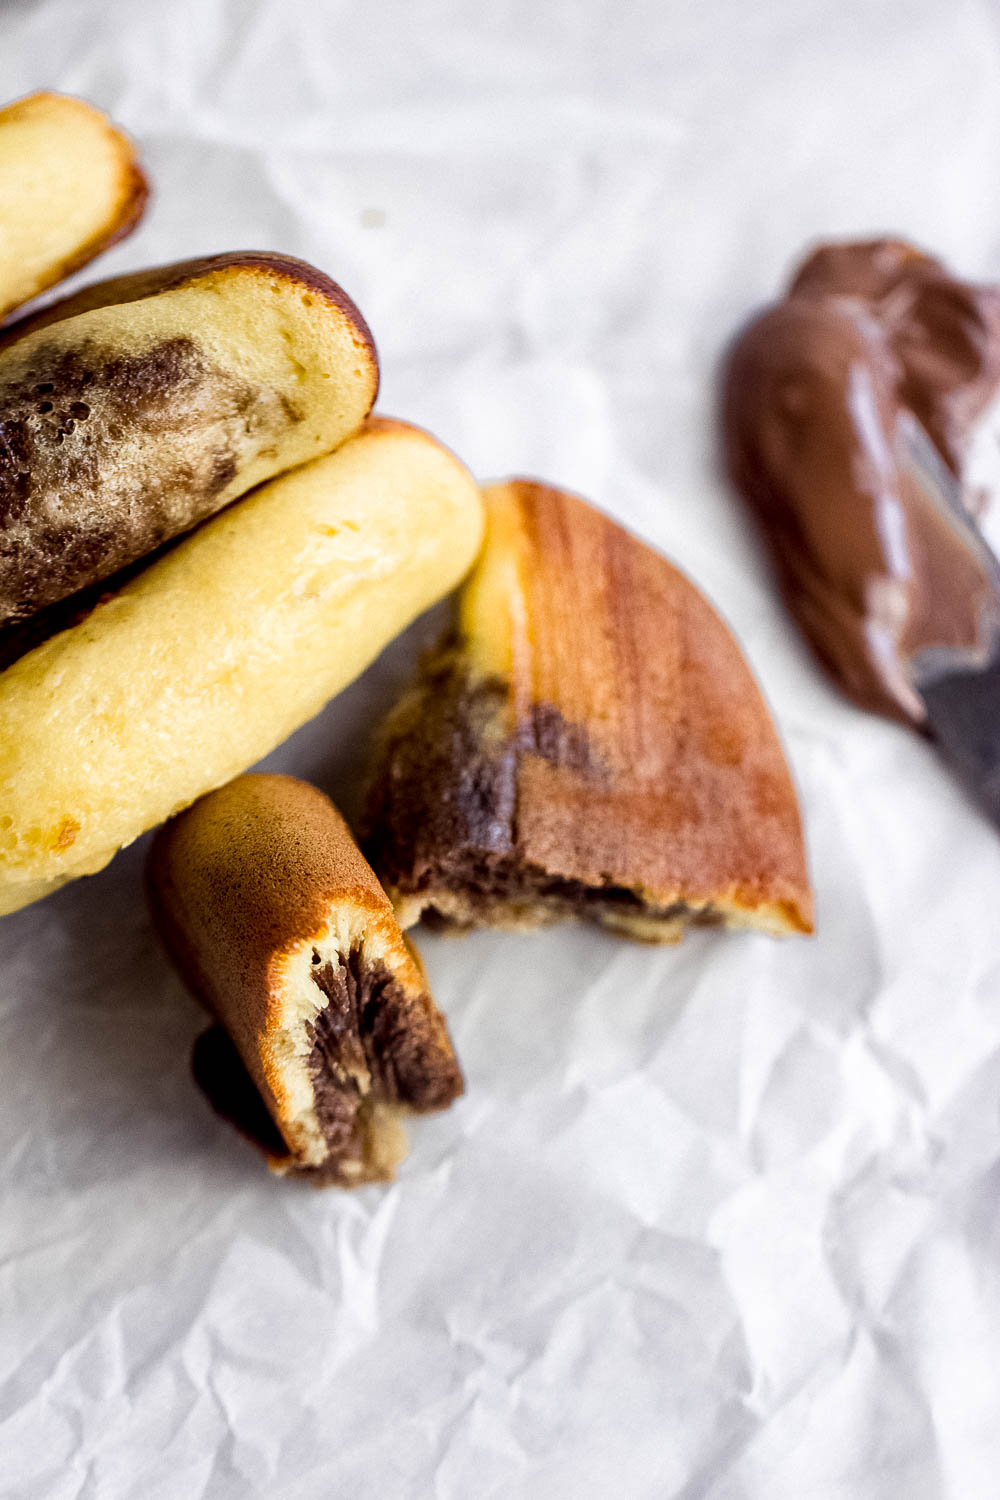 Pukis cake or kue pukis is a traditional Indonesian snack made with coconut milk. Its texture is undeniably soft yet slightly chewy, you'll ask for more than one.